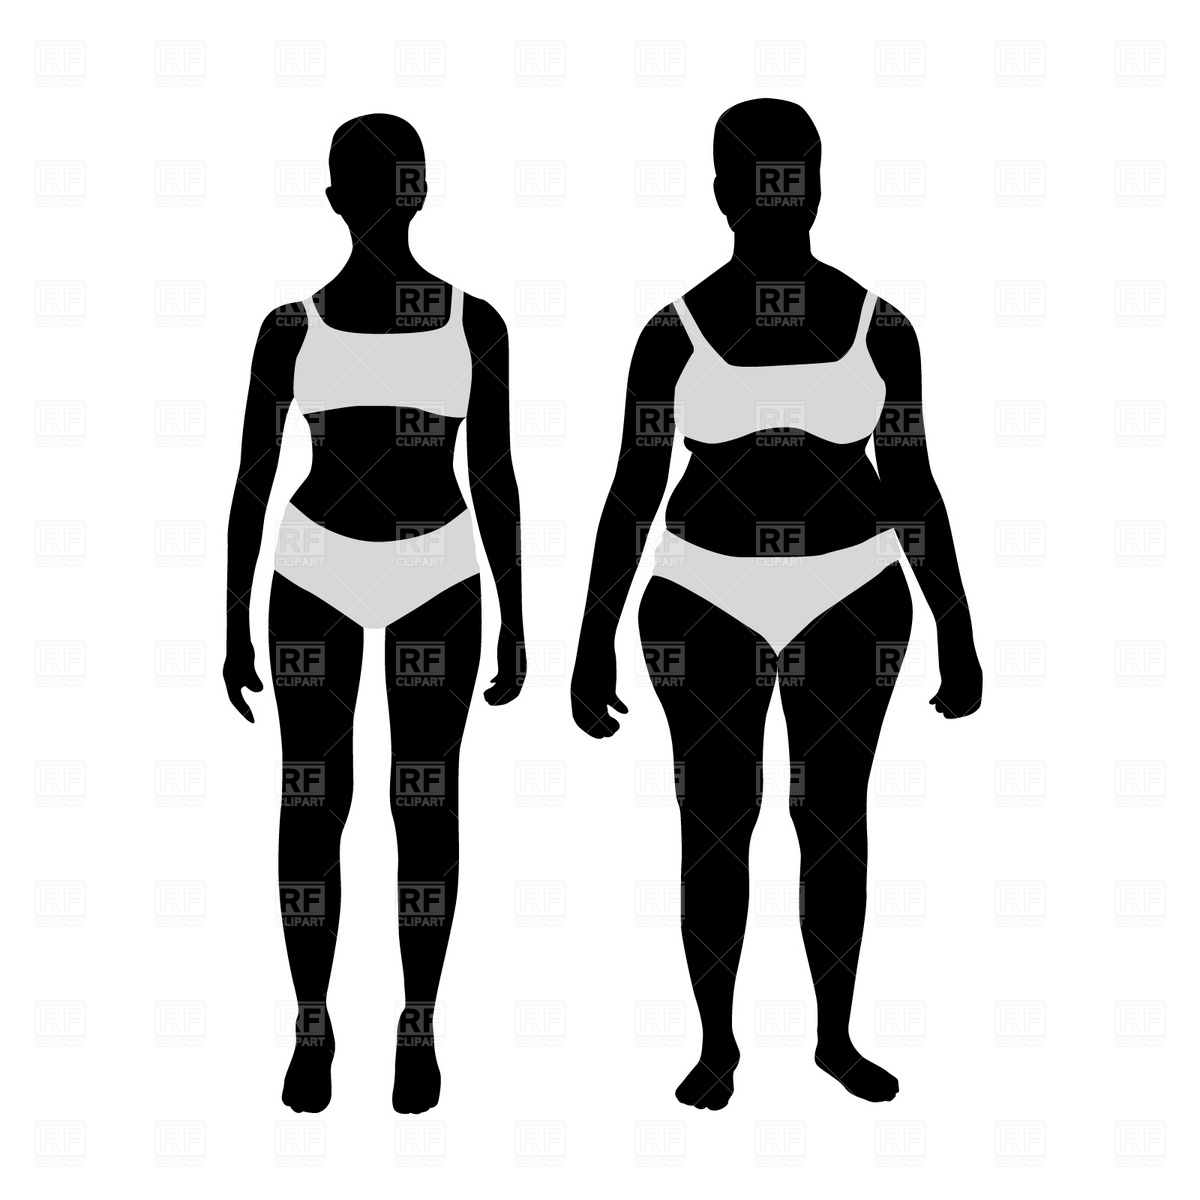 Weight Loss 1825 People Download Royalty Free Vector Clipart  Eps